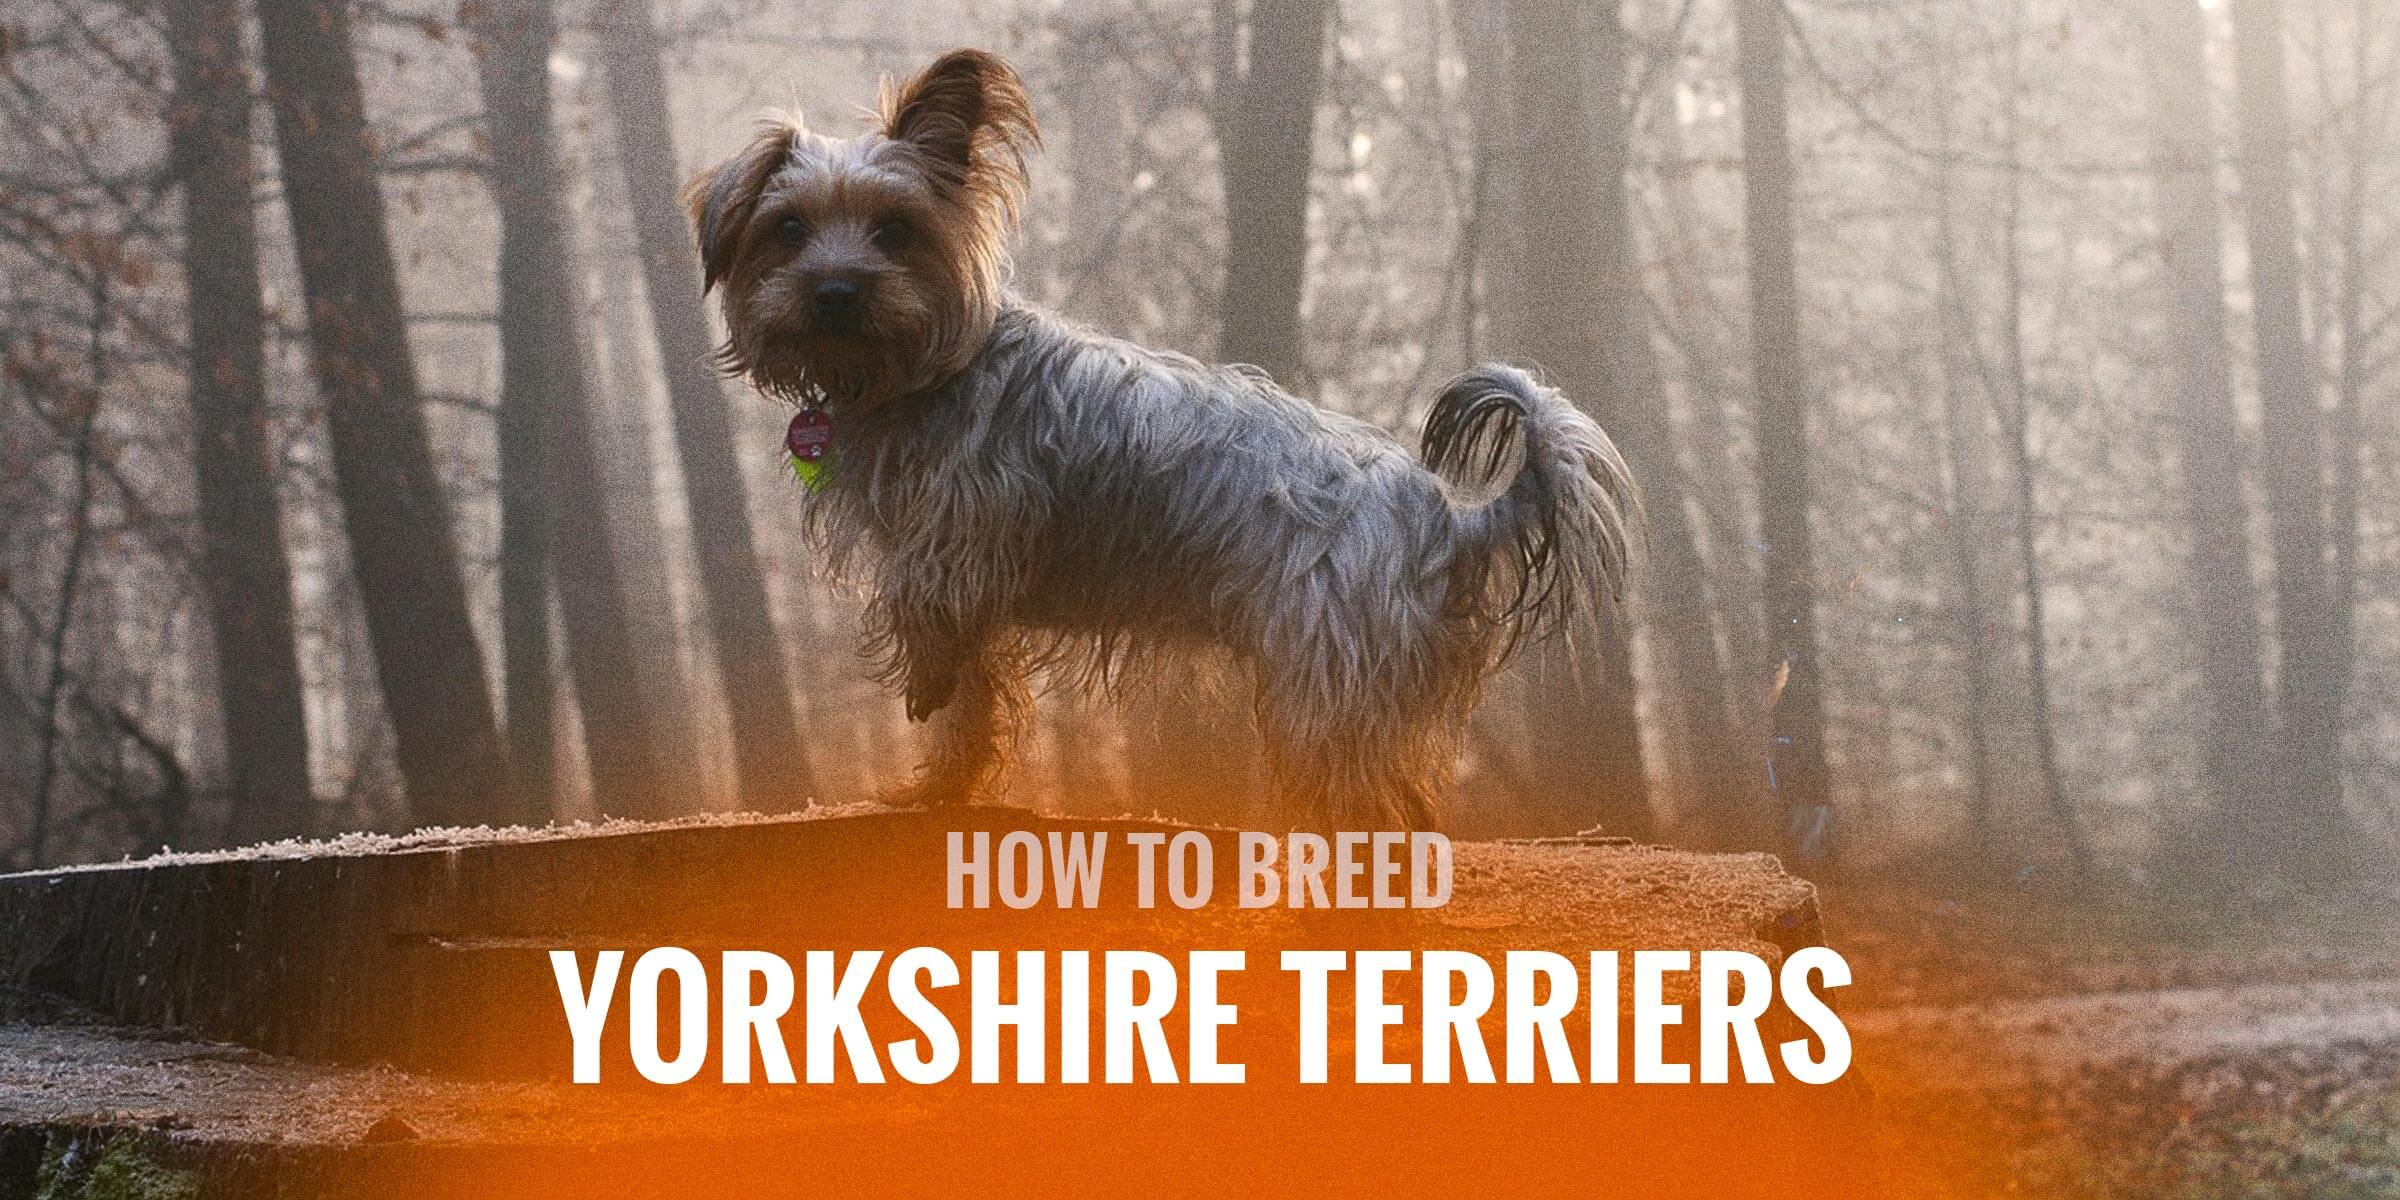 How To Breed Yorkshire Terriers